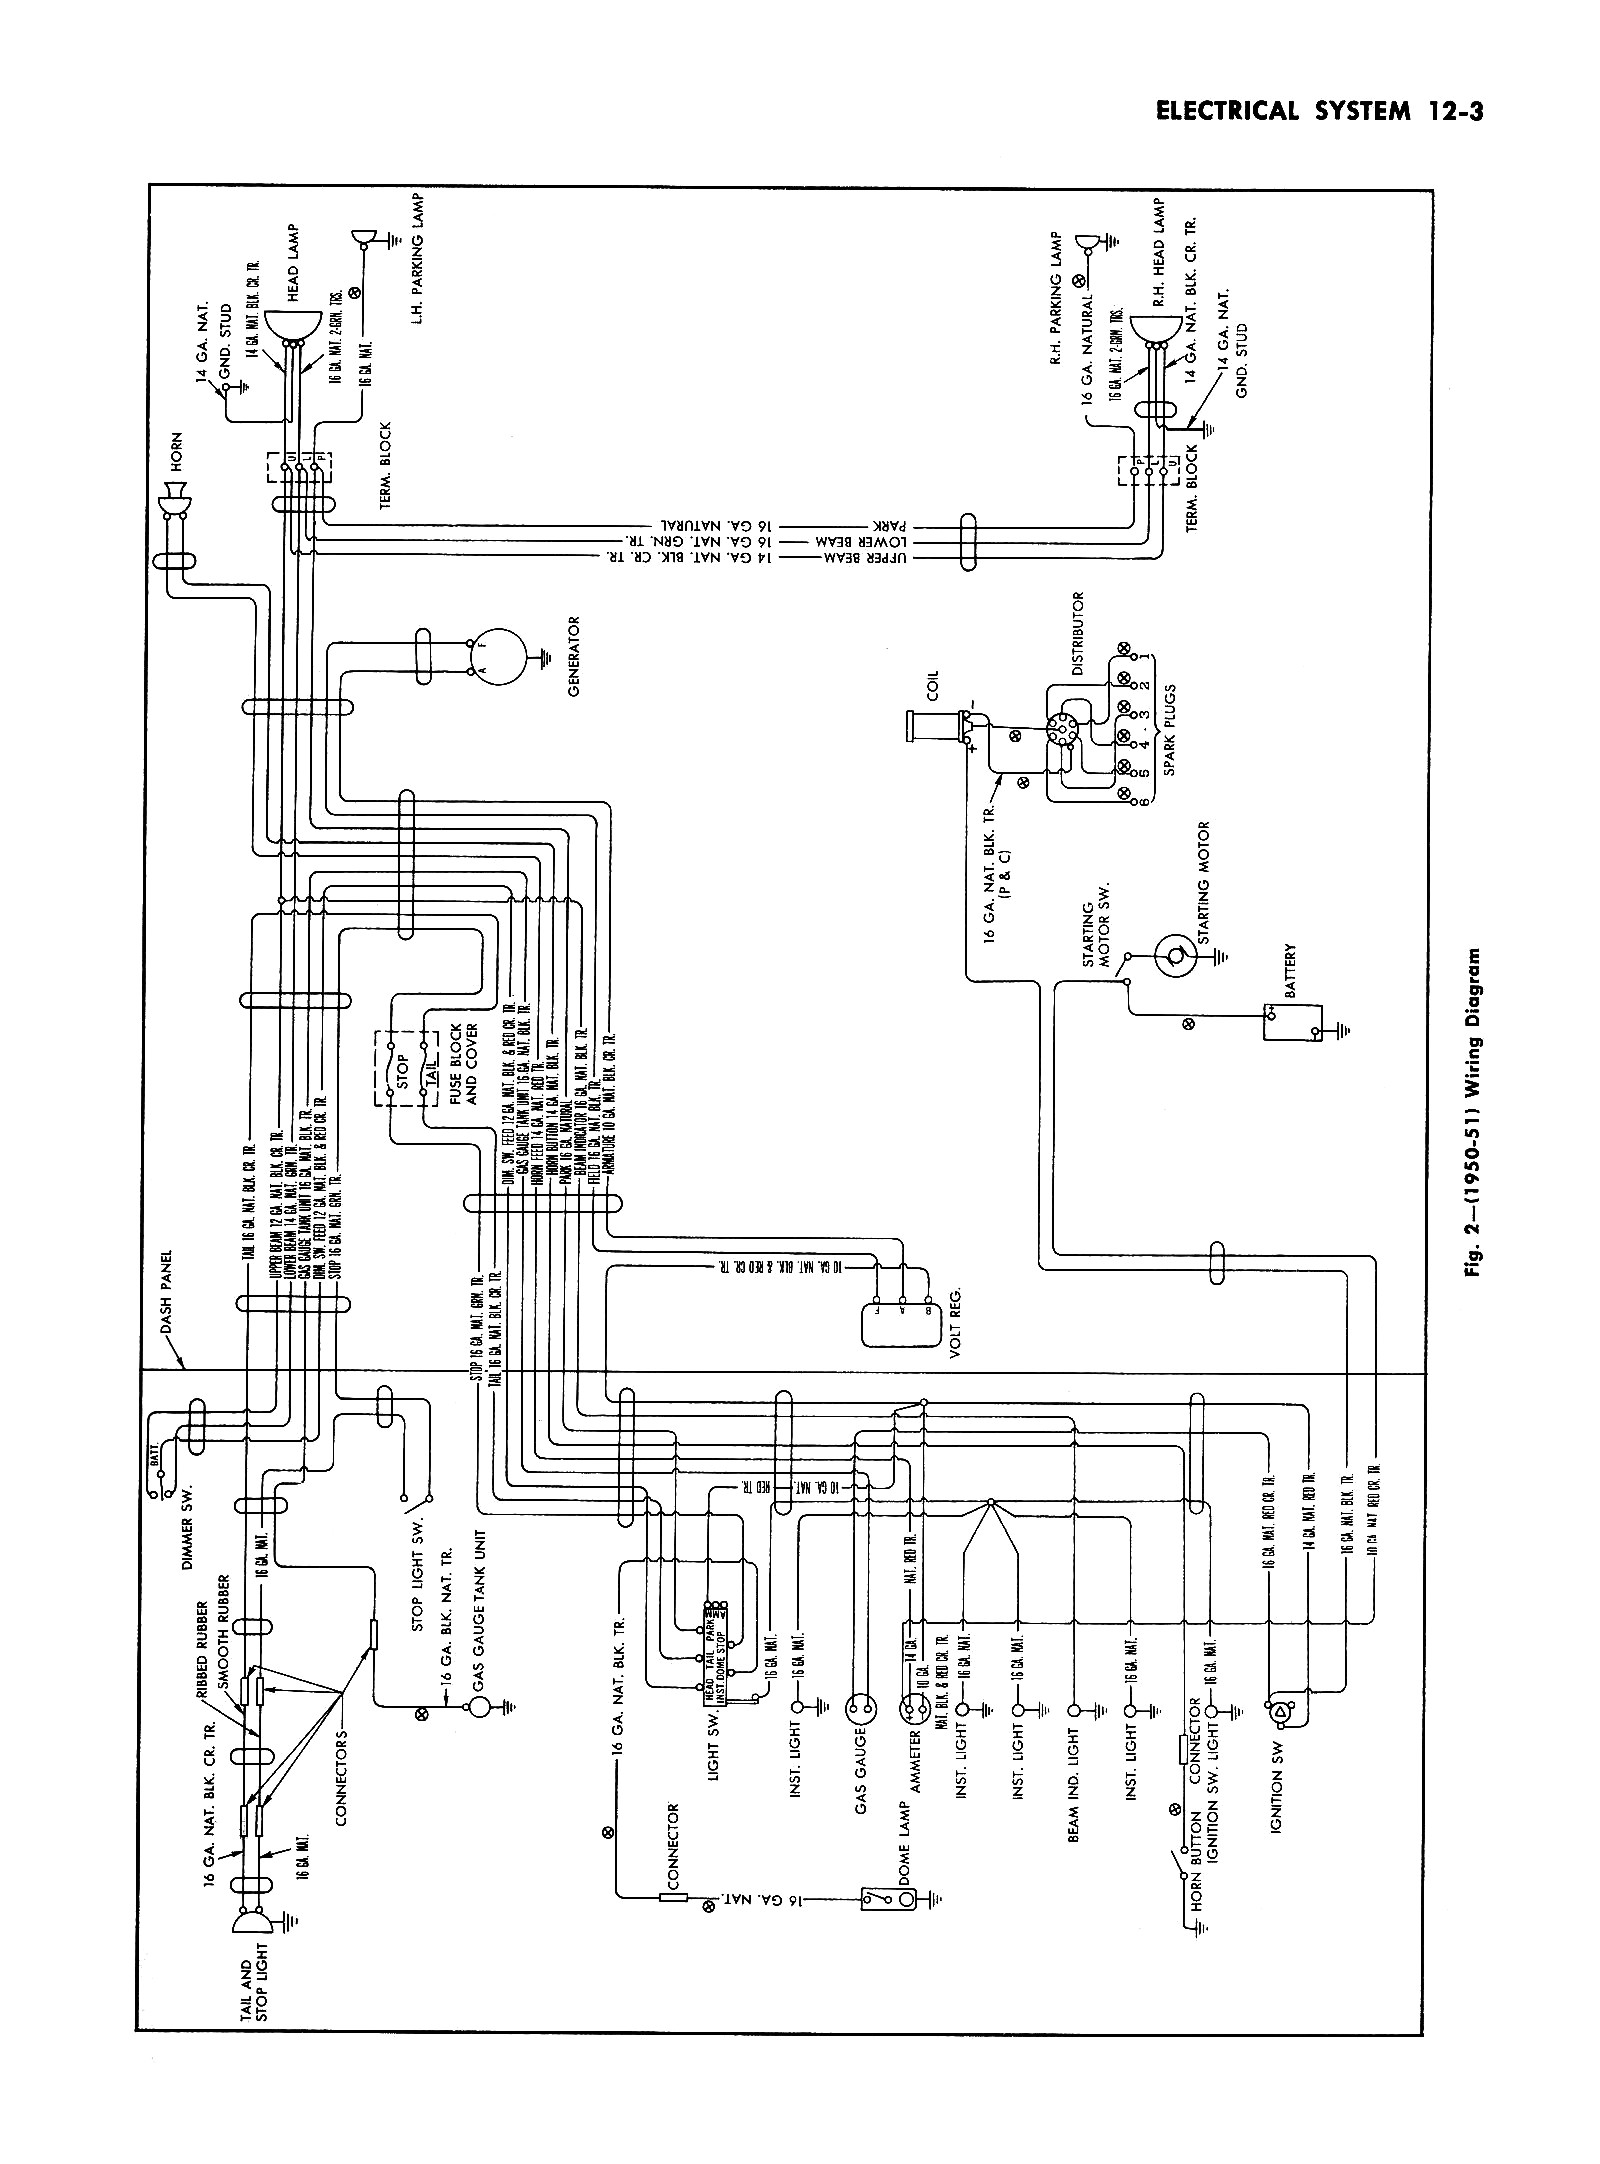 Wiring Diagram For 1949 Ford on 1952 ford f1 wiring diagram